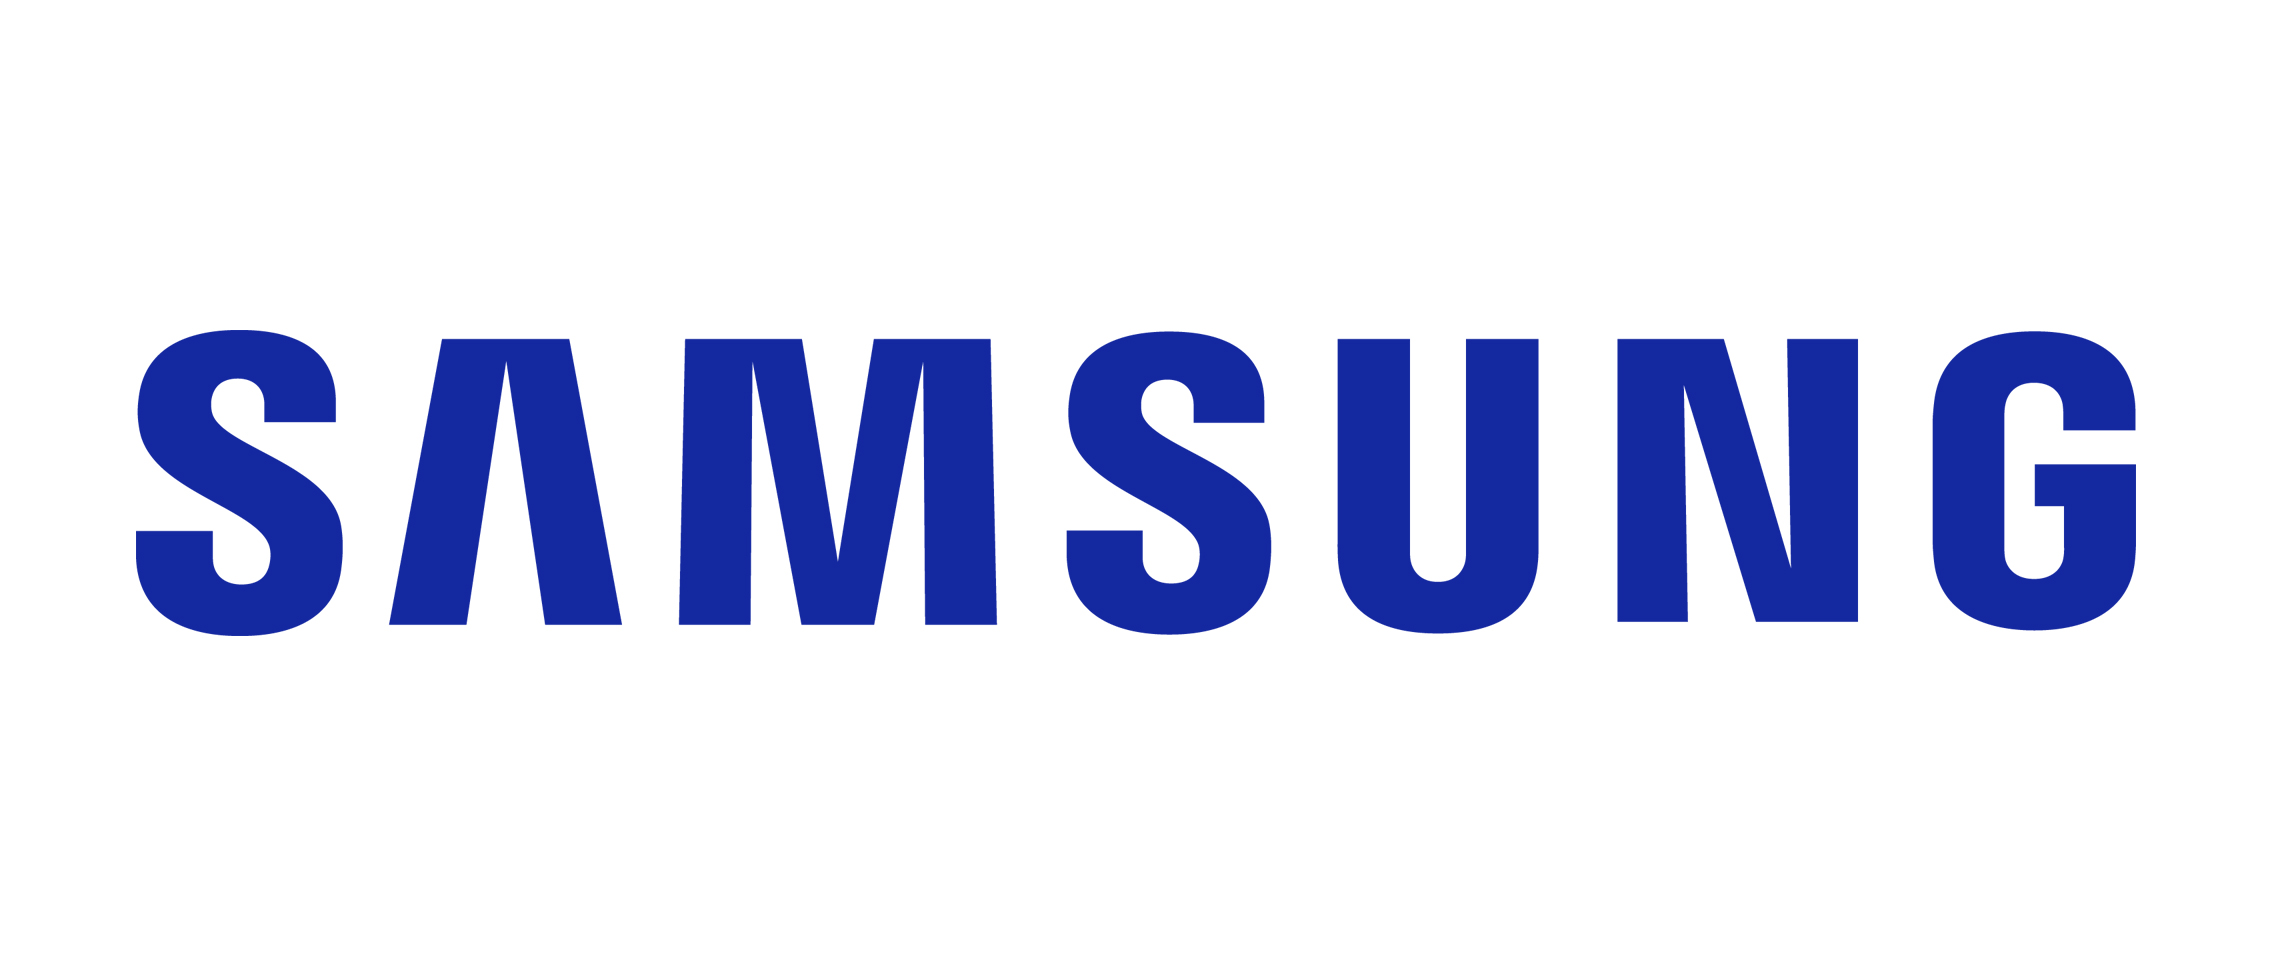 introduction samsung history Agenda samsung group – history & structure samsung electronics history company focus financial overview strategy organizational structure challenges samsung.